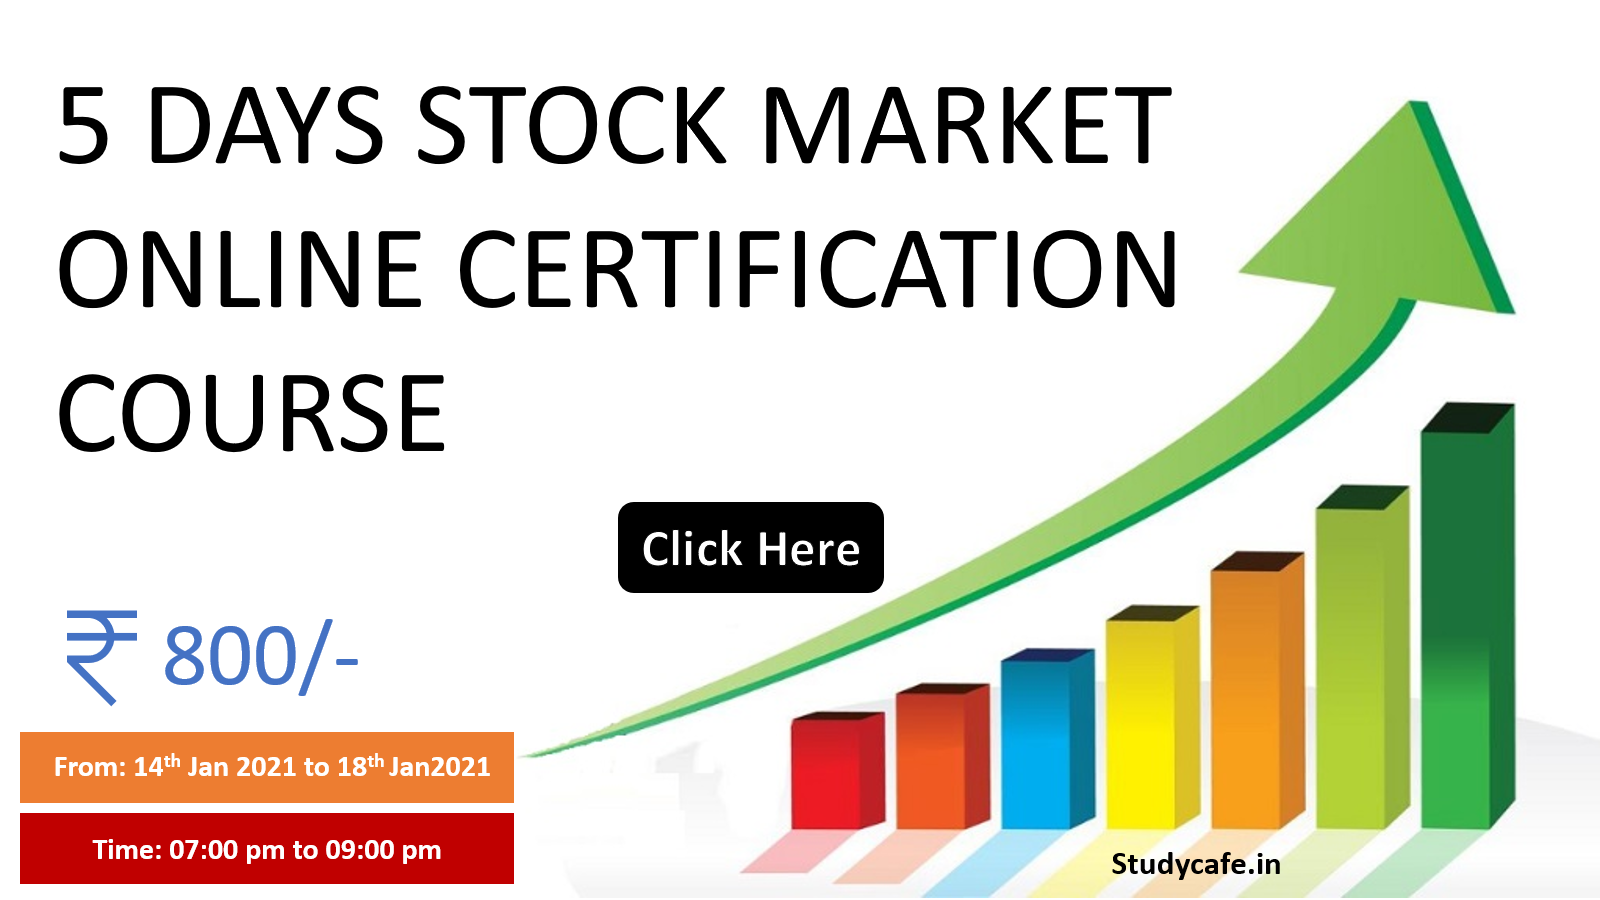 Join 5 Days Online Stock Market Certification Course